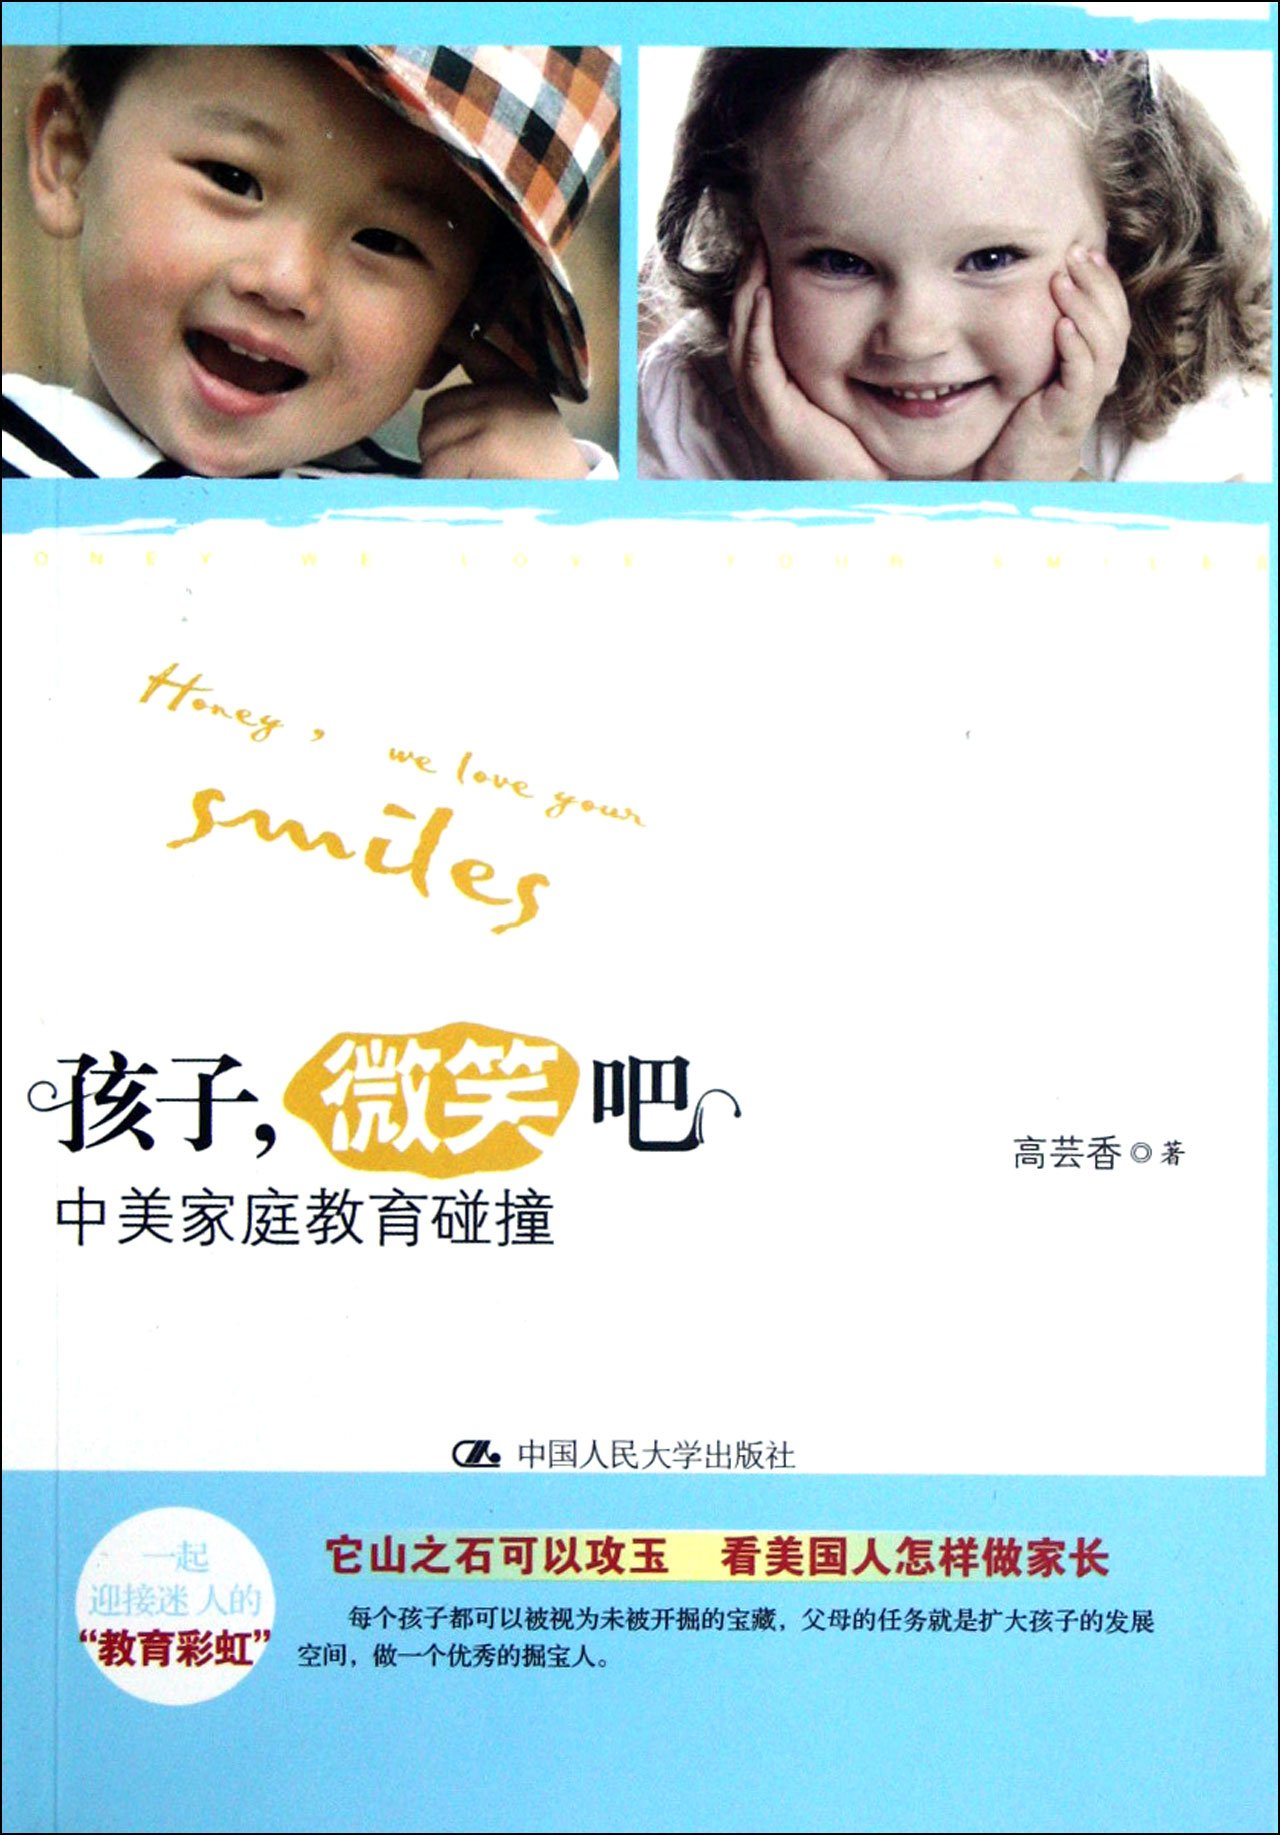 Honey, We Love Your Smiles (Chinese Edition) pdf